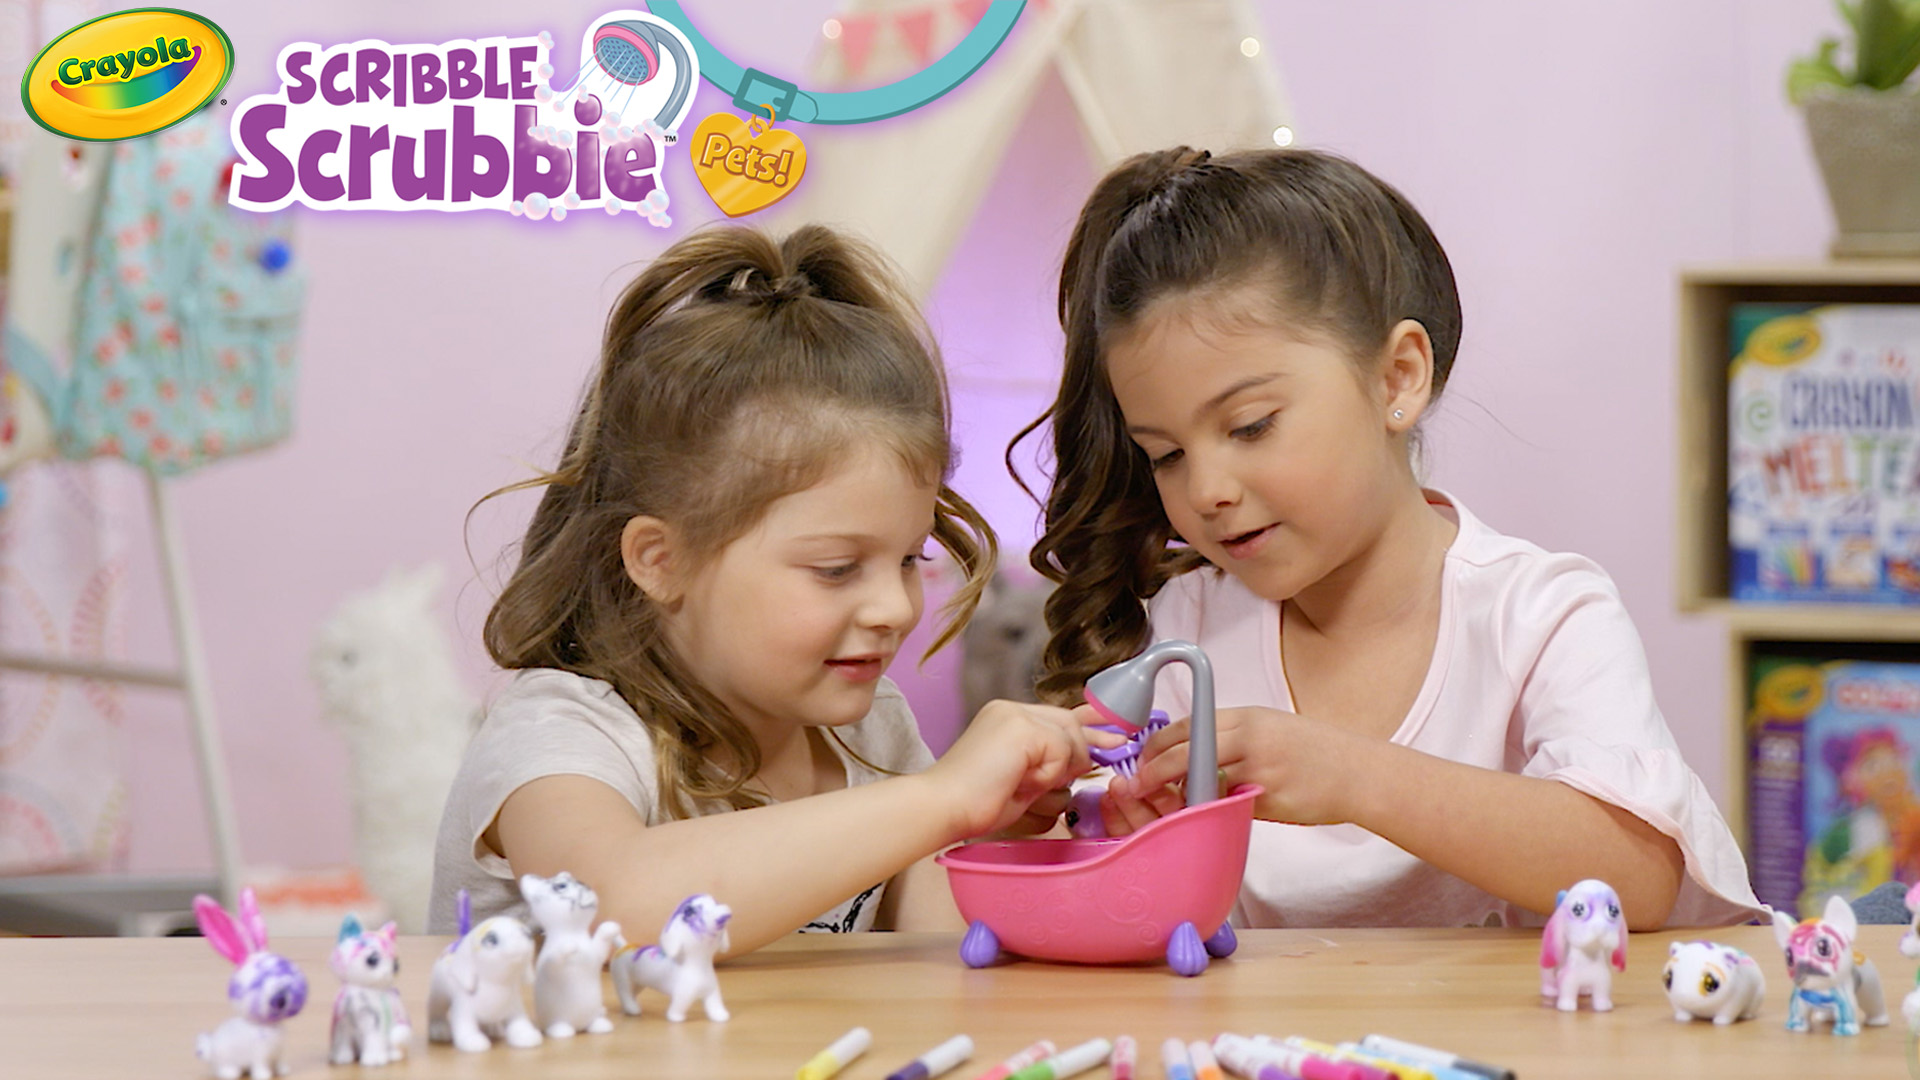 Scribble Scrubbie Pets Scrub Tub Playset Out of Box